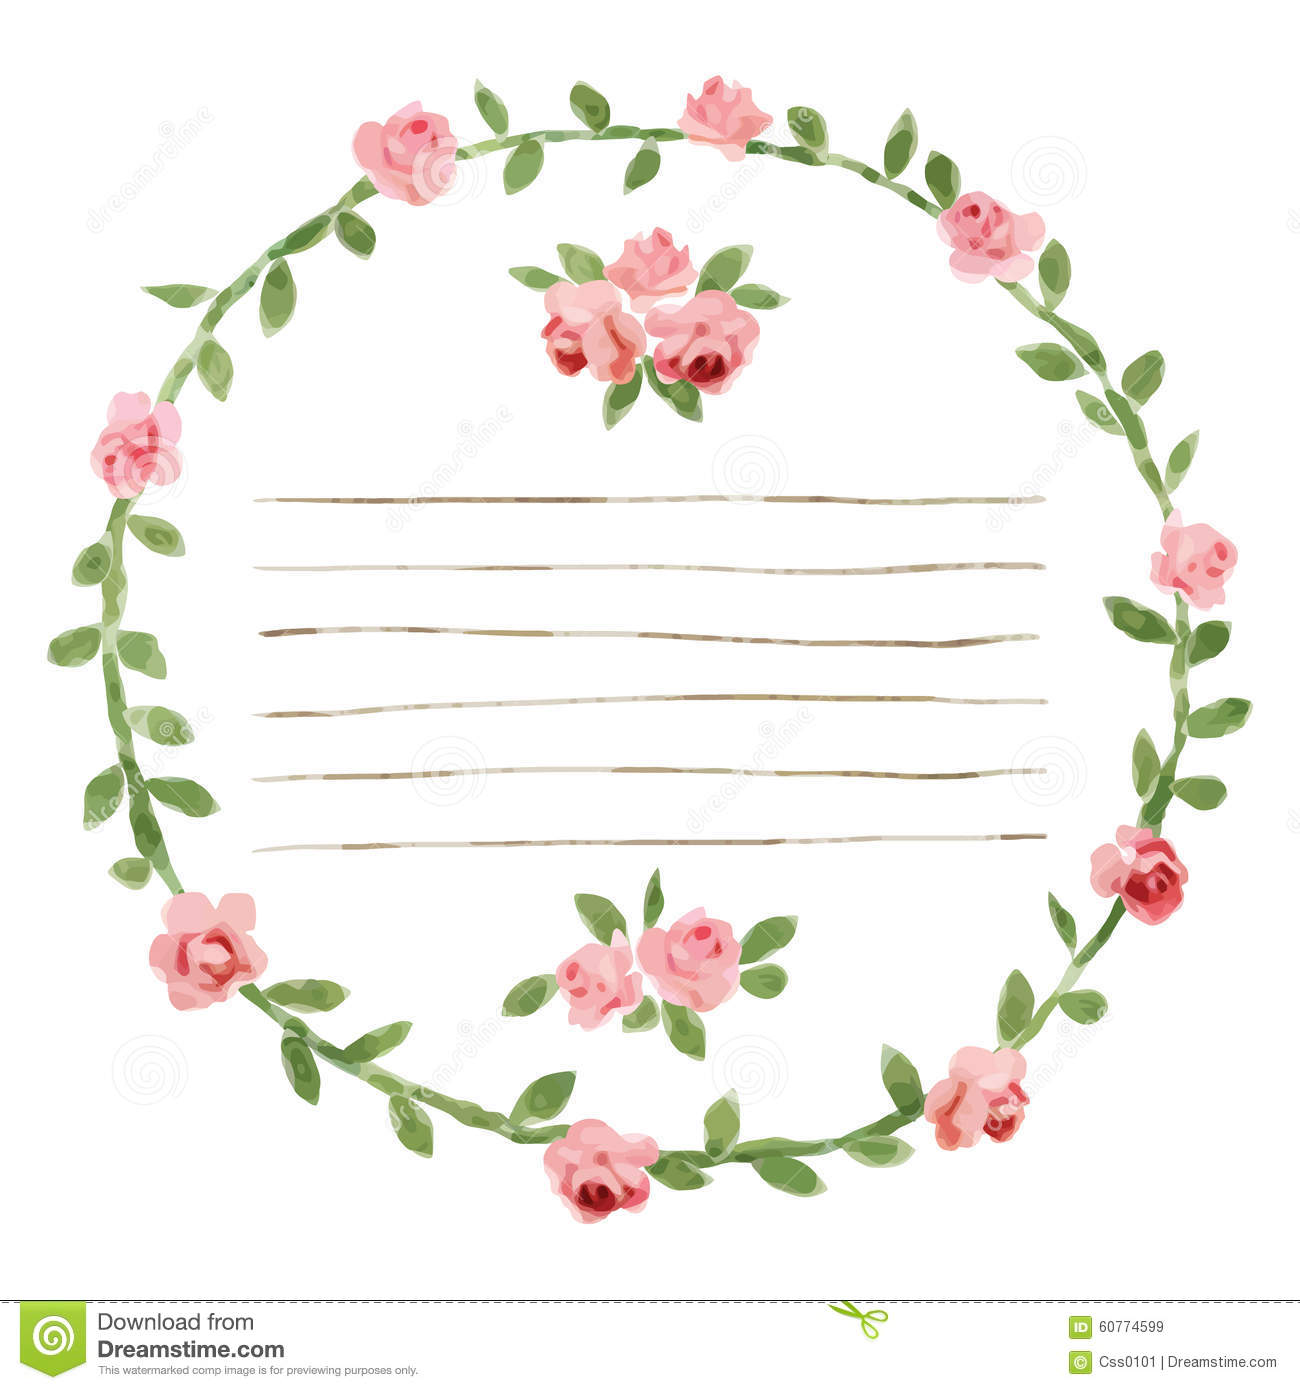 Vector Watercolor Round Frame With Roses And Foliage Elements Hand Draw Floral Border Stock